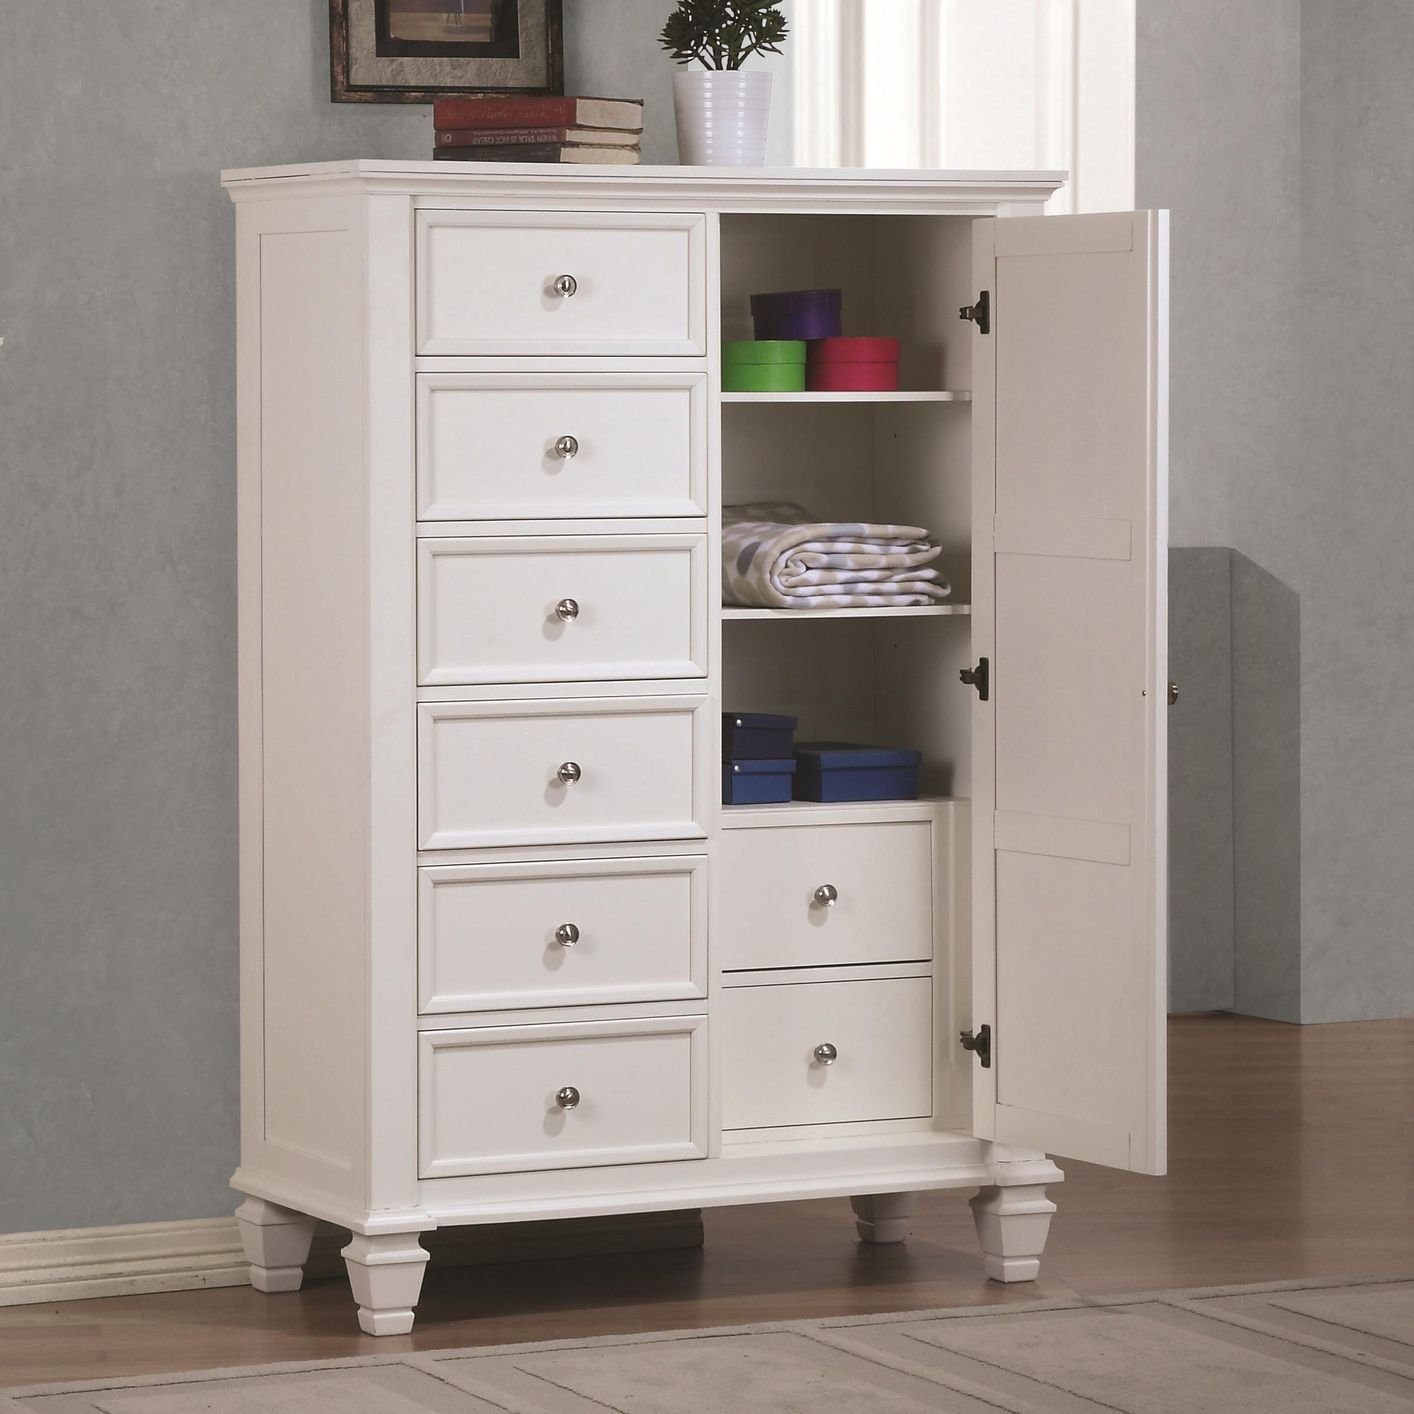 Chest Drawers White Wood Chest Of Drawers Steal A Sofa Furniture